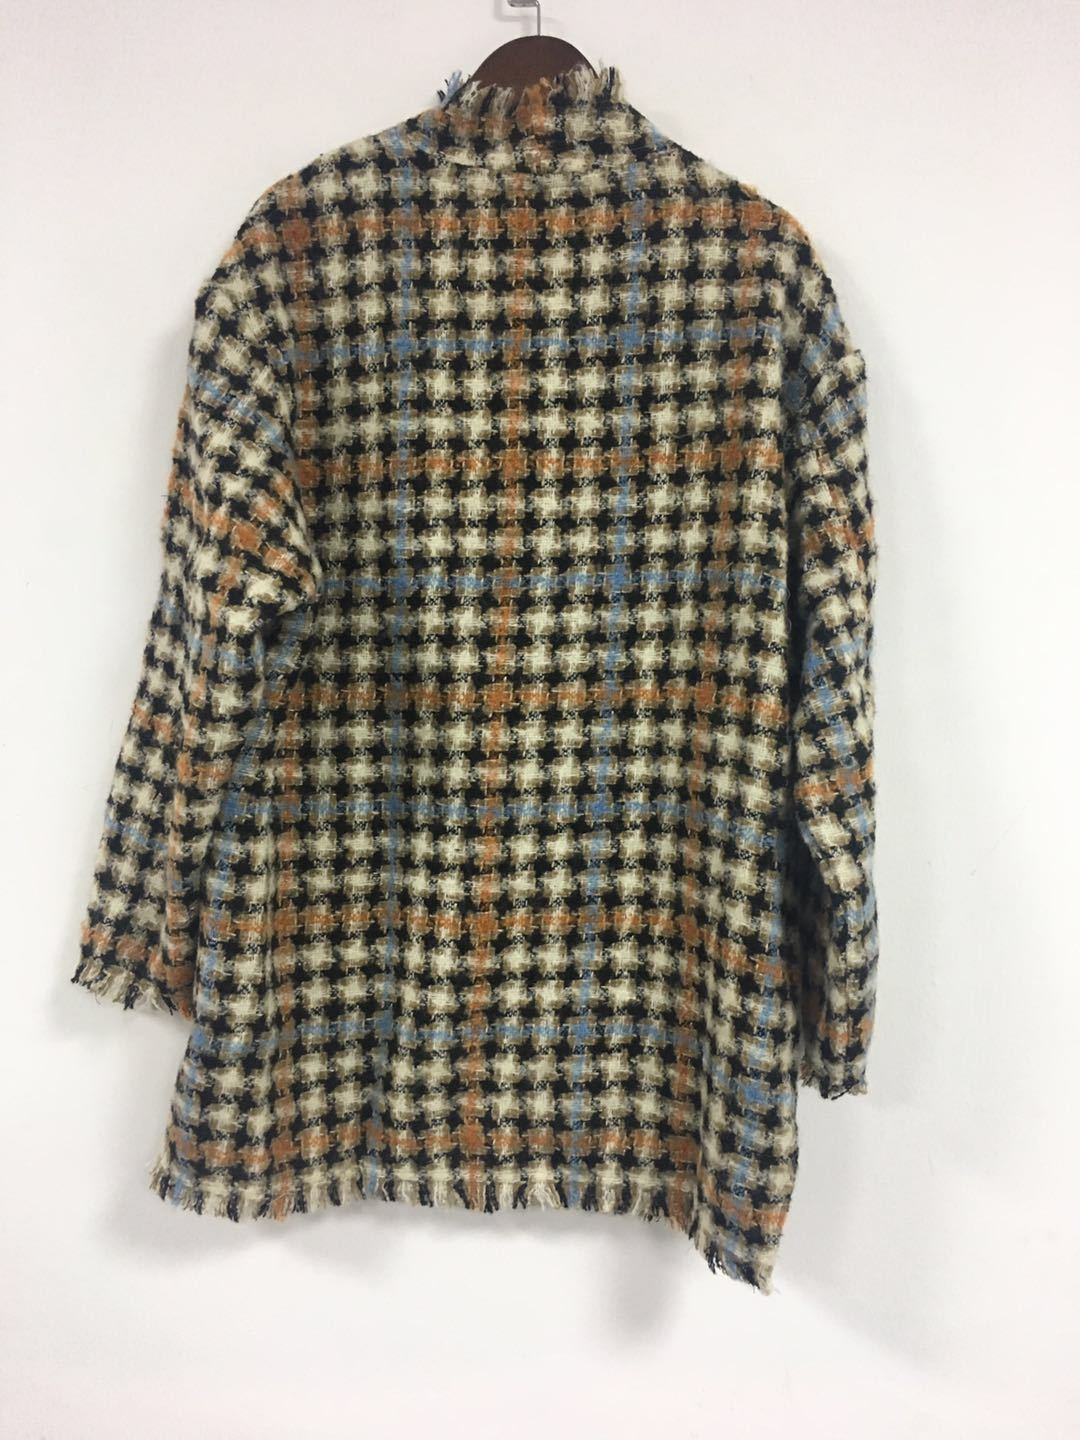 Image 3 - Women Sweater2019 Autumn and Winter Small Fragrance Wind Tweed Wool Blend Retro Check Coat CardiganPullovers